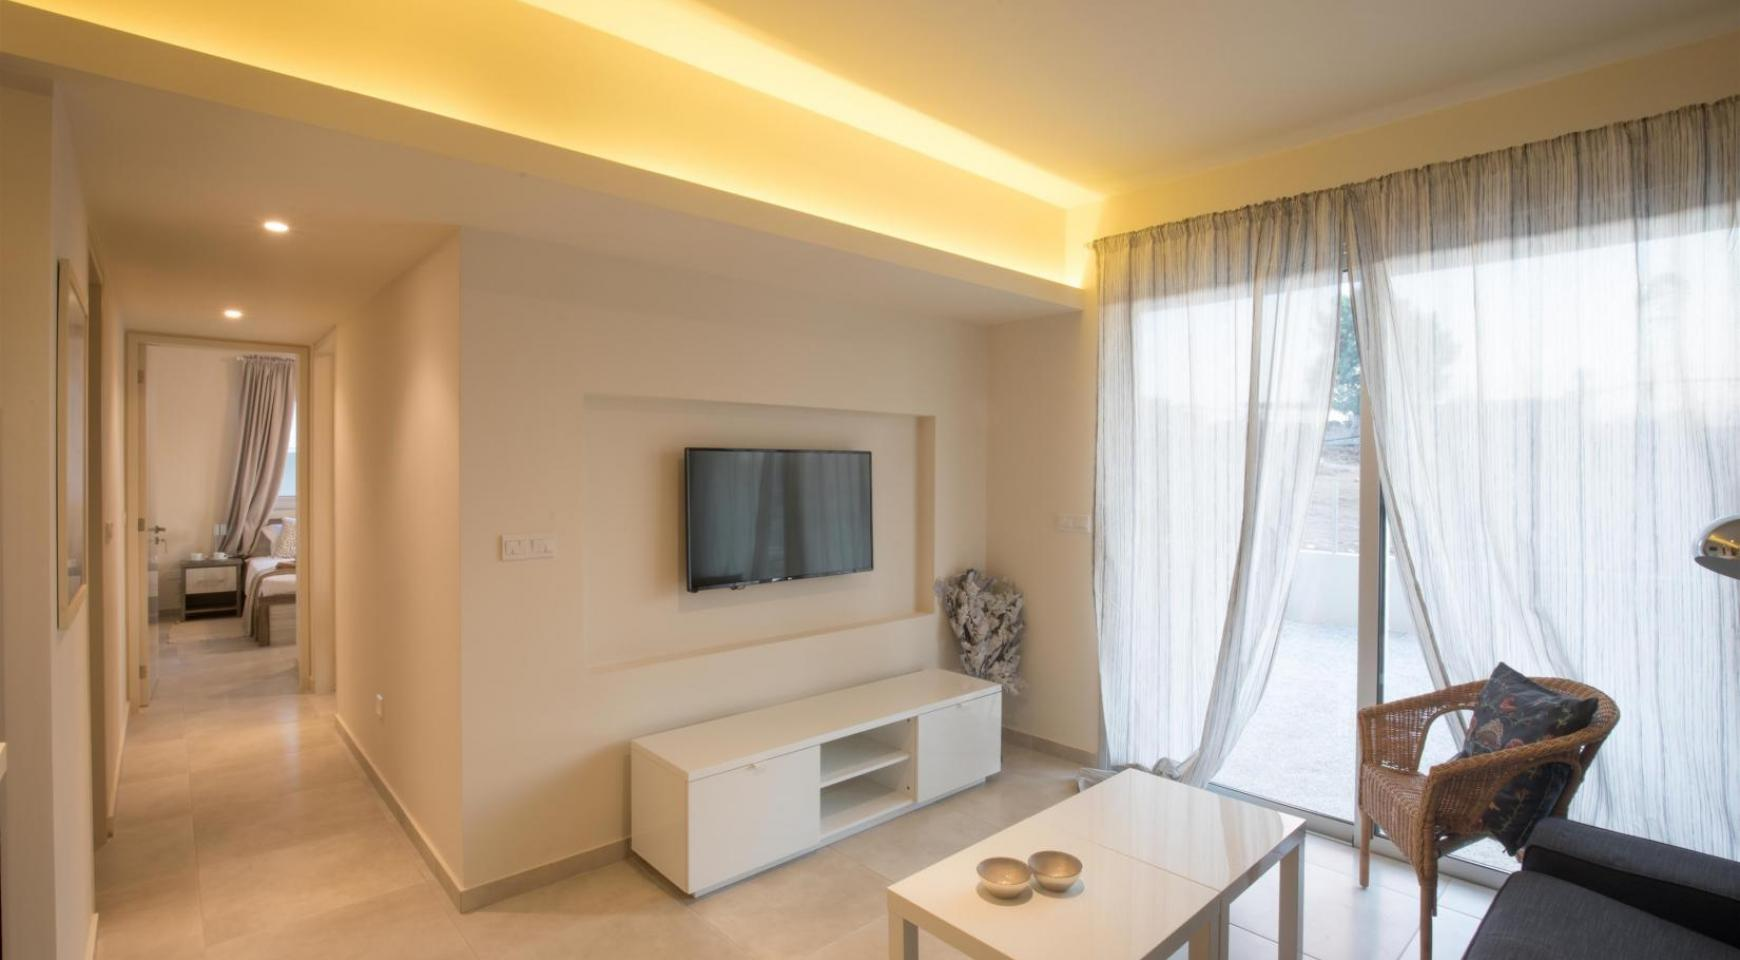 New 2 Bedroom Apartment in Kapparis Area - 8